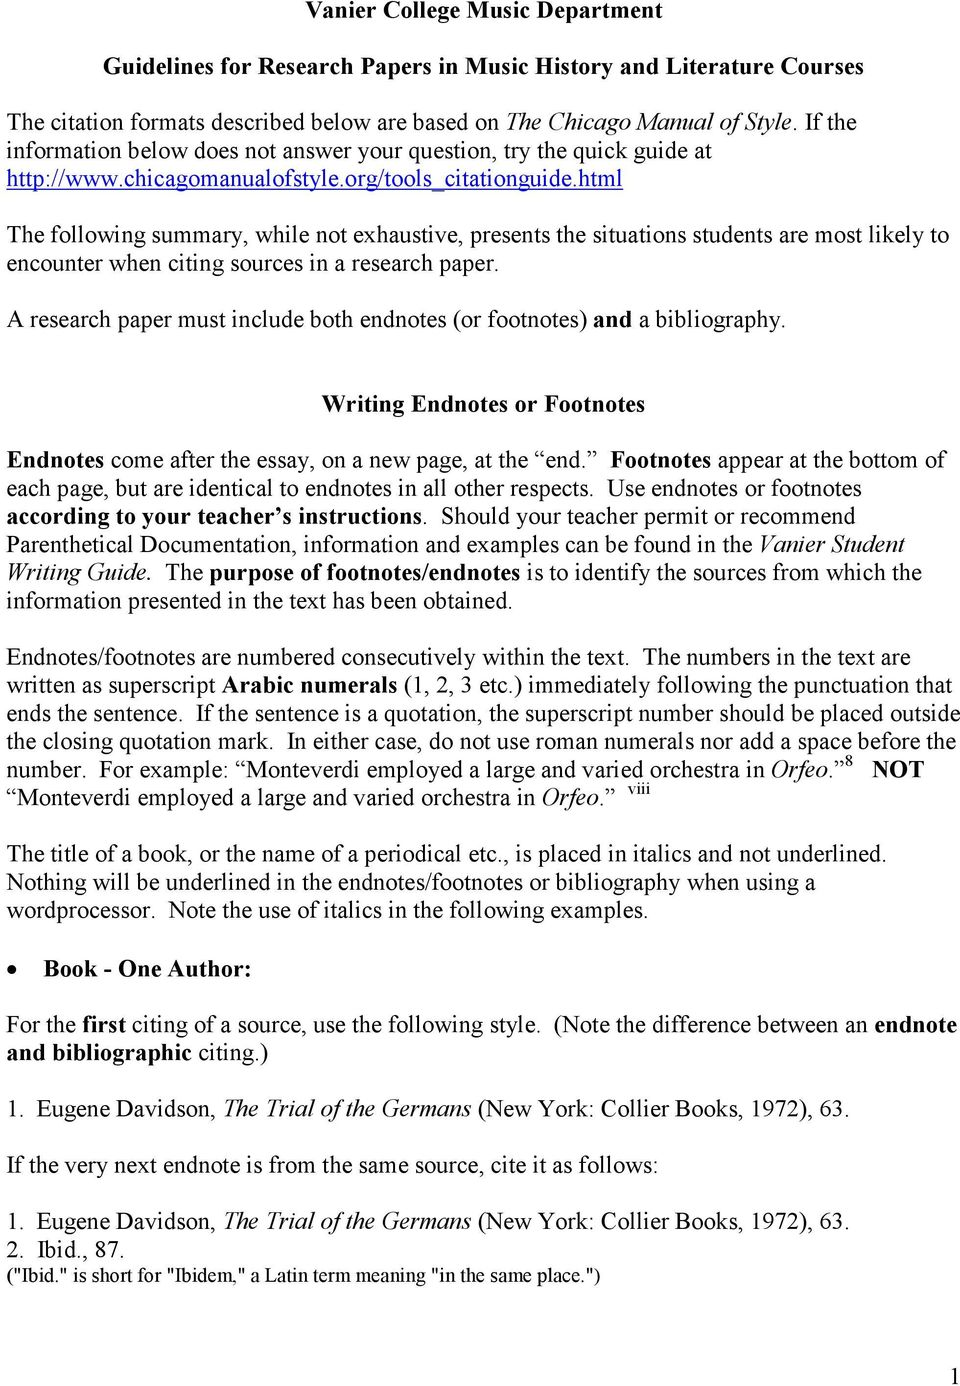 004 Research Paper Page 1 Footnotes Endnotes Formidable In How To Use And A Full